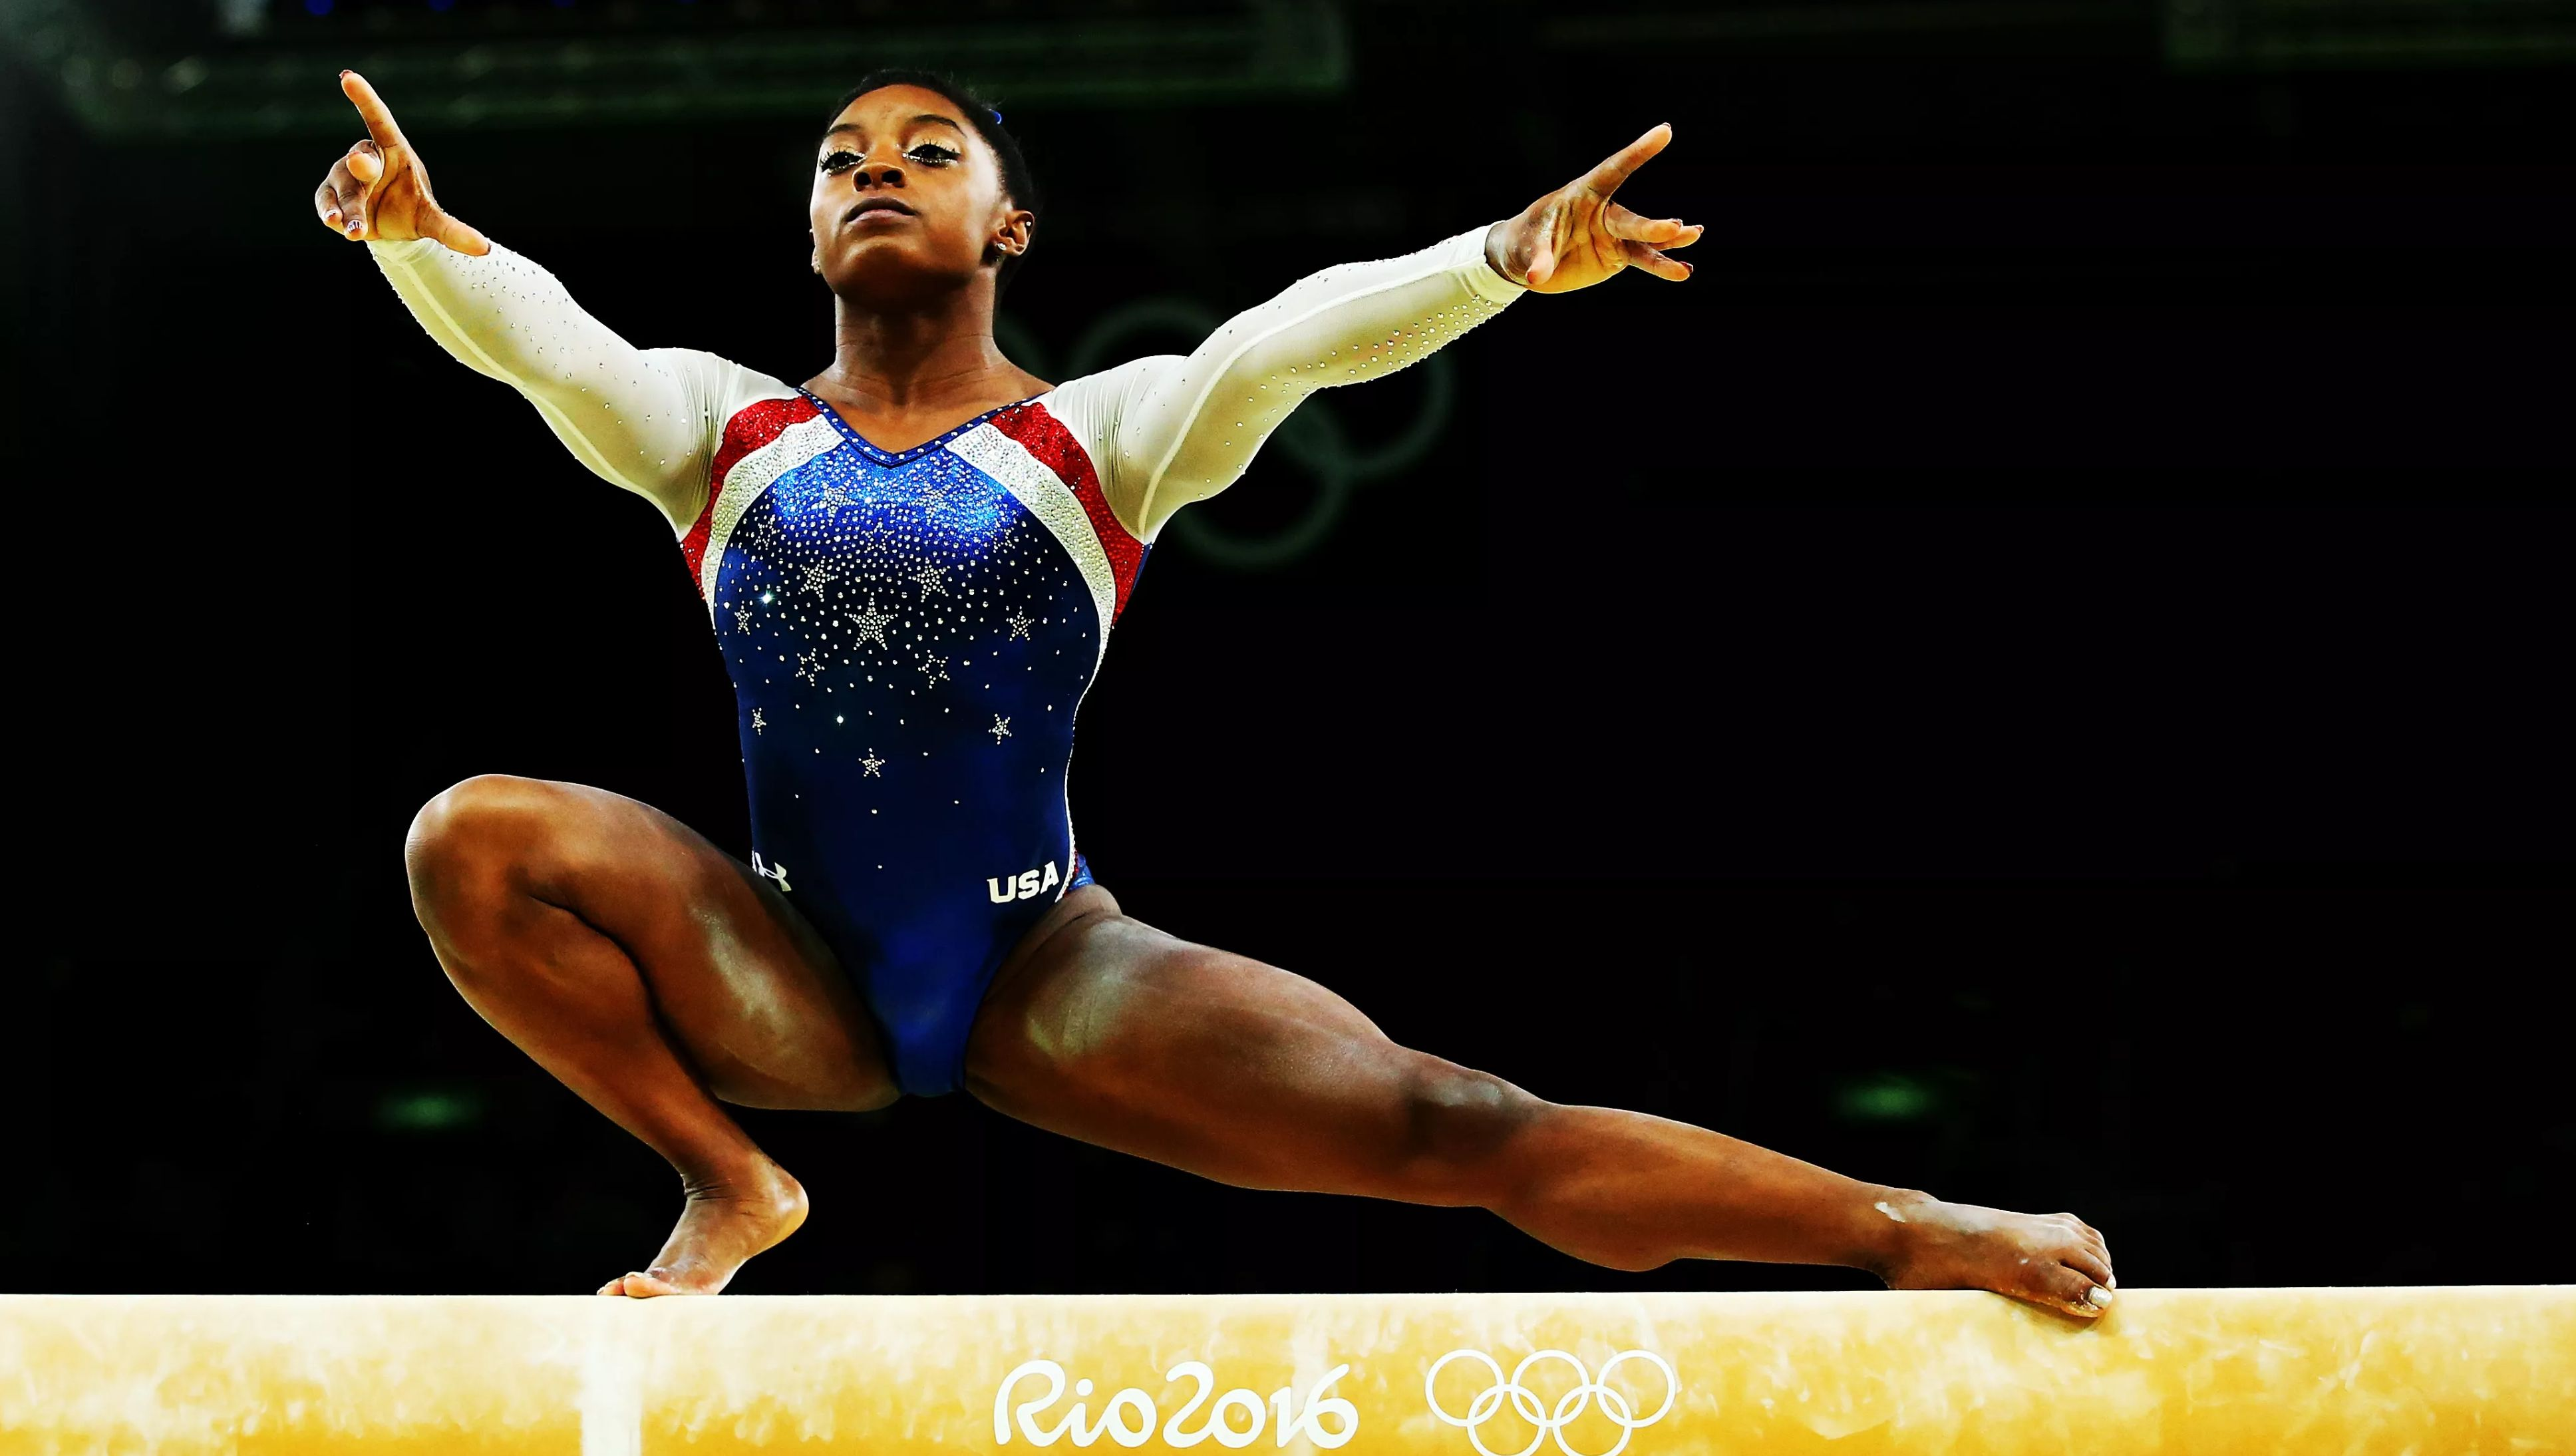 RIO DE JANEIRO, BRAZIL - AUGUST 11: Simone Biles of the United States competes on the balance beam during the Women's Individual All Around Final on Day 6 of the 2016 Rio Olympics at Rio Olympic Arena on August 11, 2016 in Rio de Janeiro, Brazil.